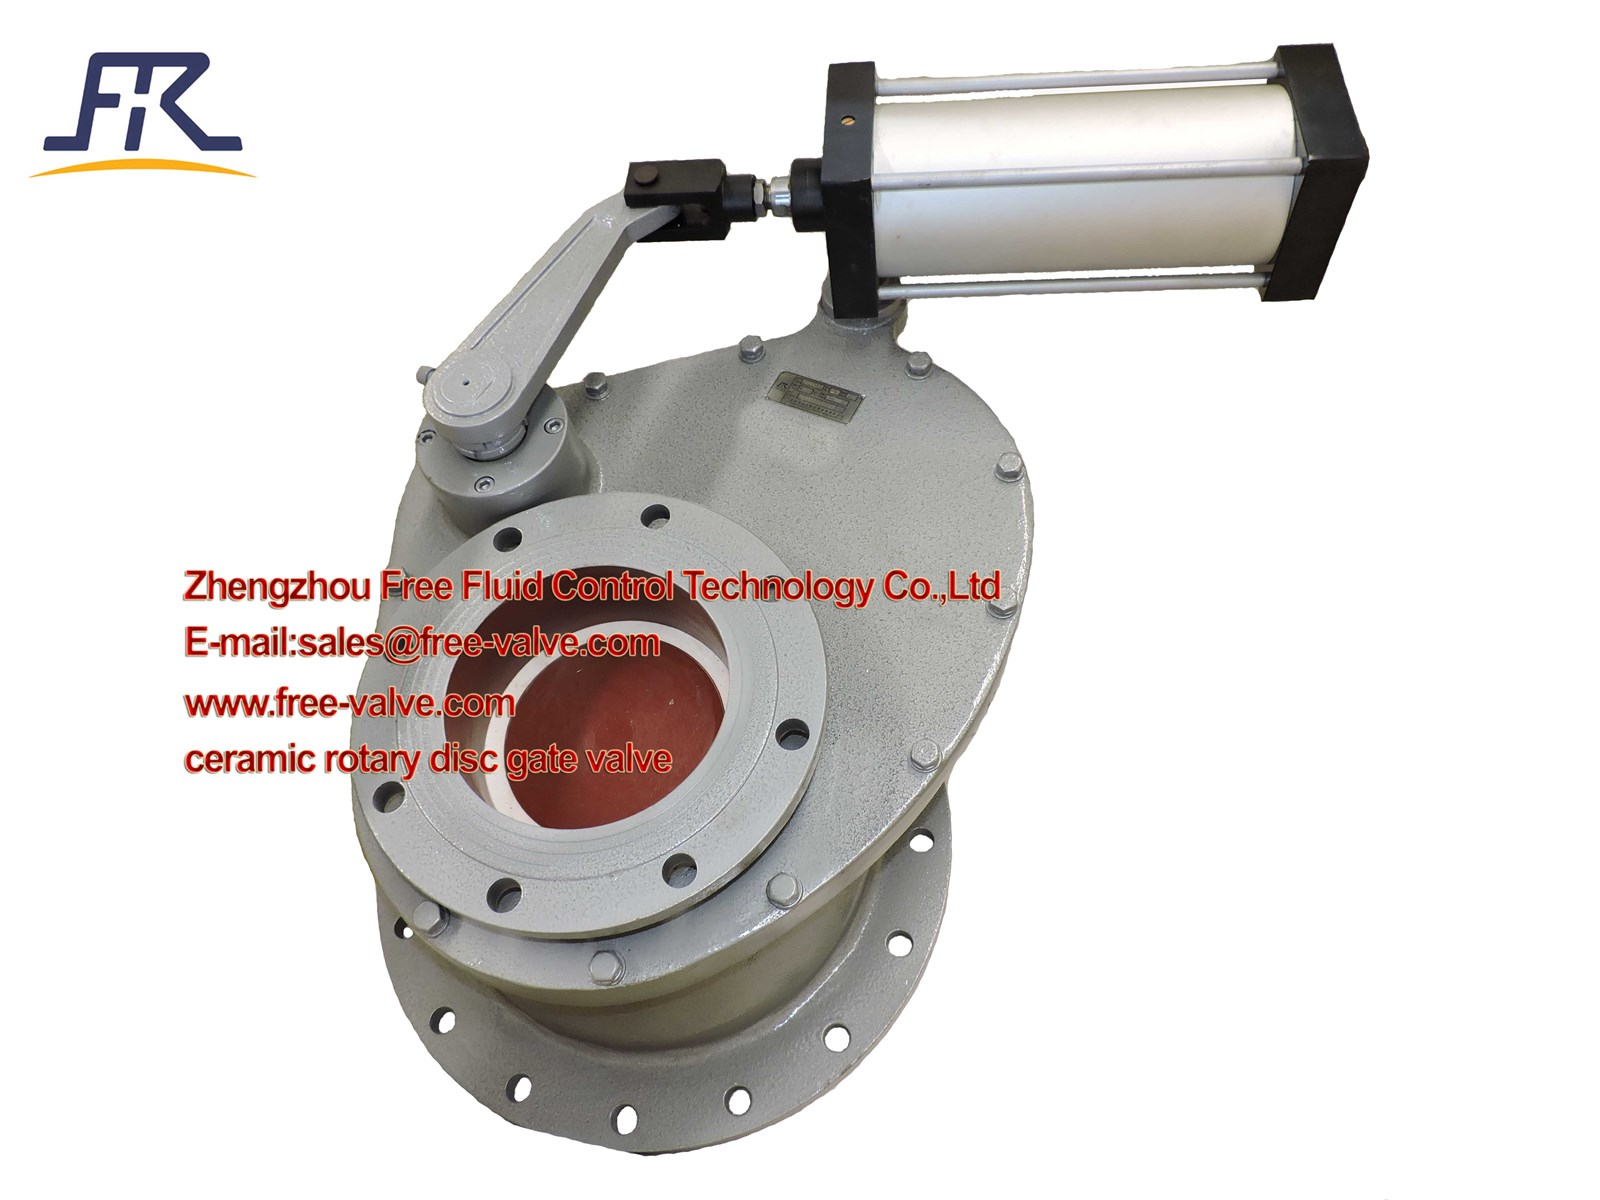 Pneumatic Swing Ceramic Feed Valve, Ceramic Swing Discharge Gate Valve